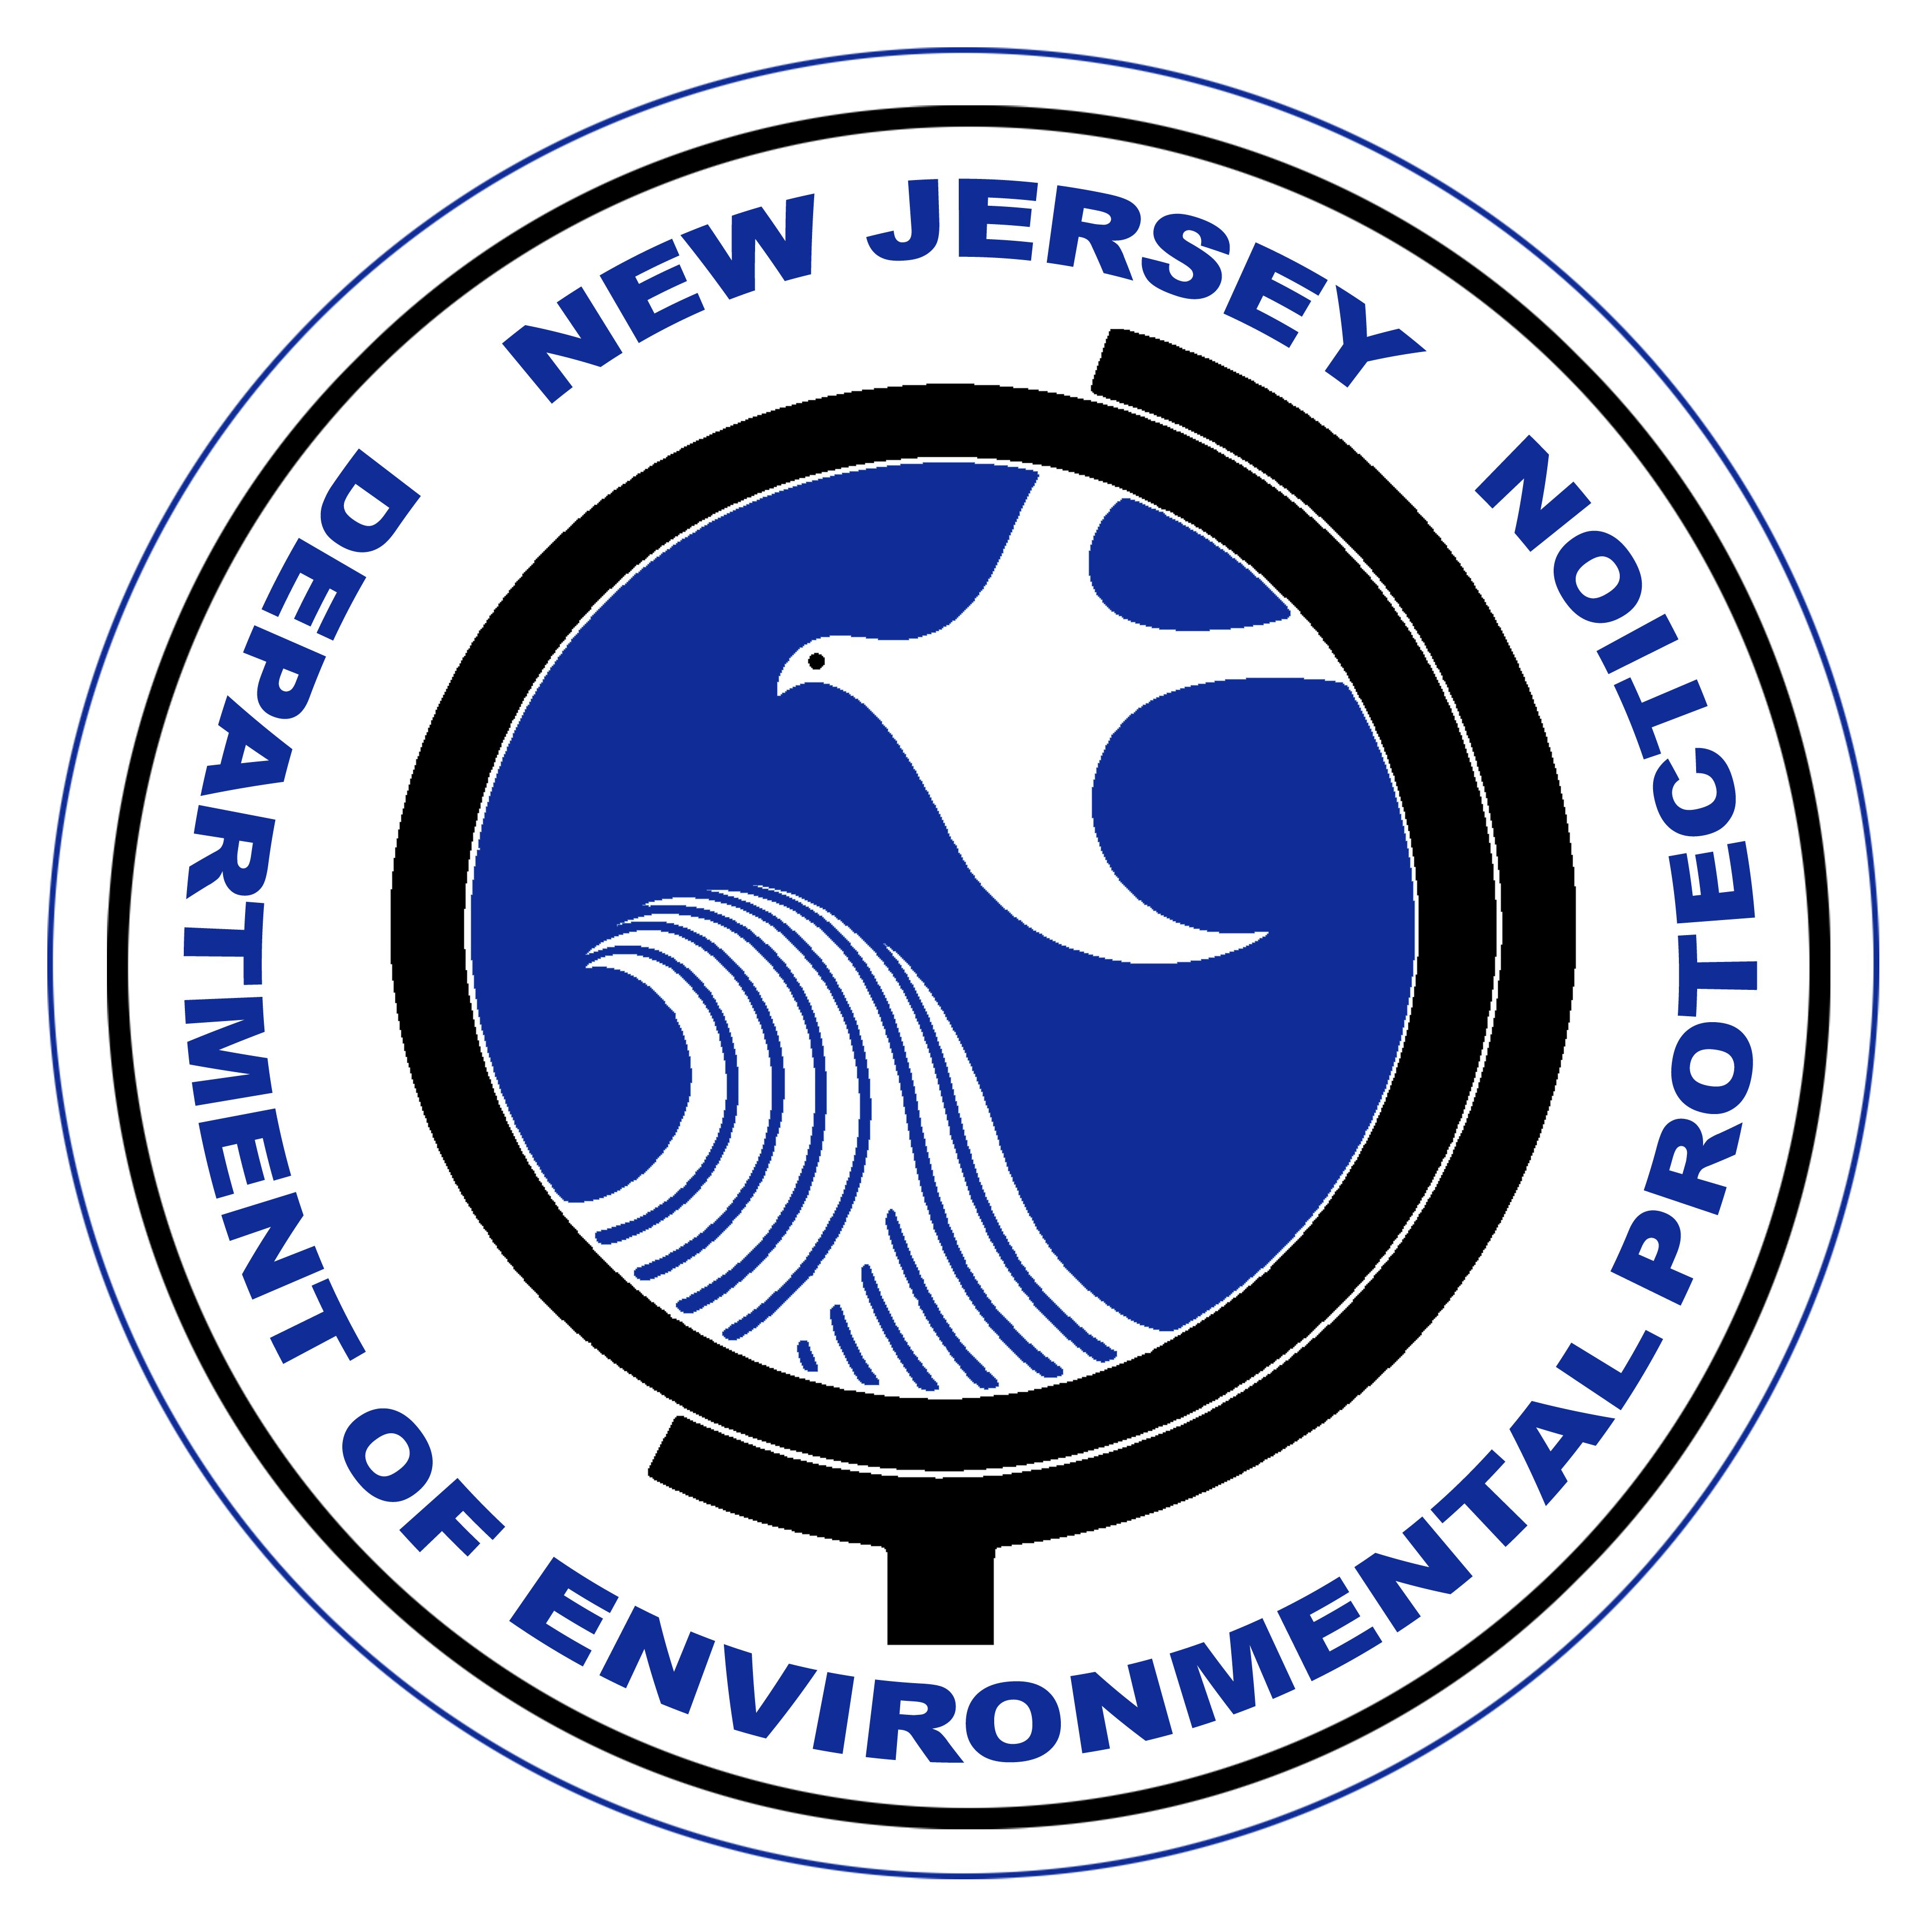 Calendar And Organization : New jersey department of environmental protection cake